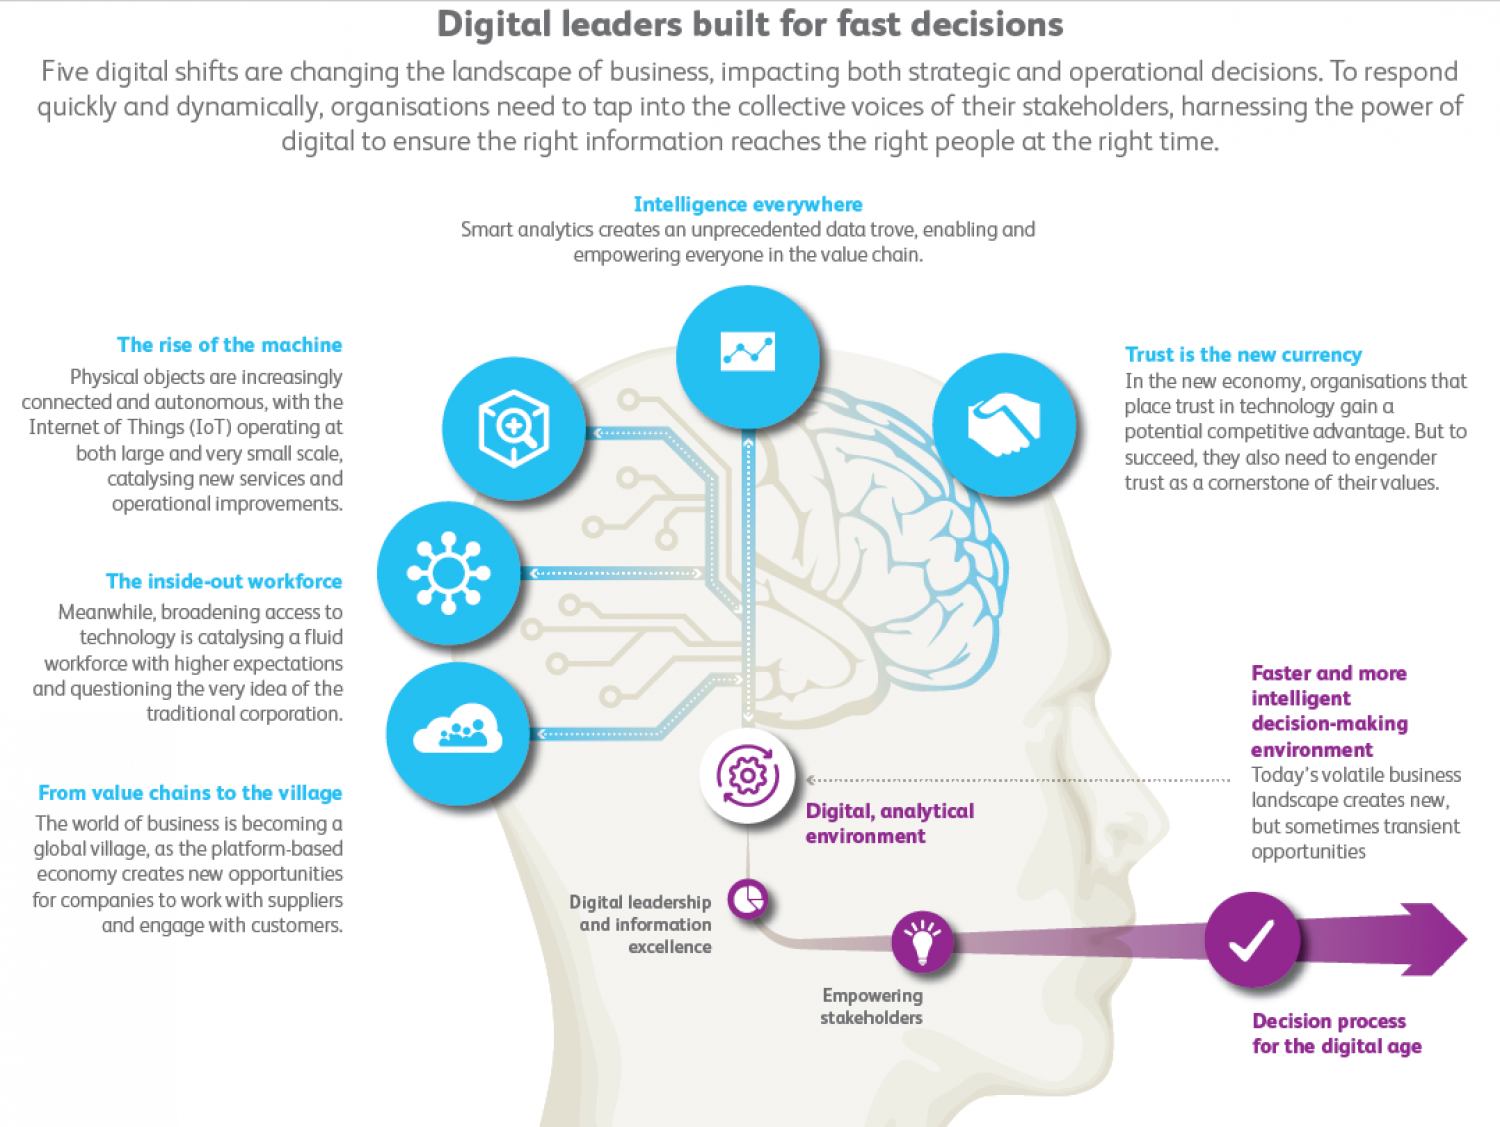 Digital leaders built for fast decisions Infographic